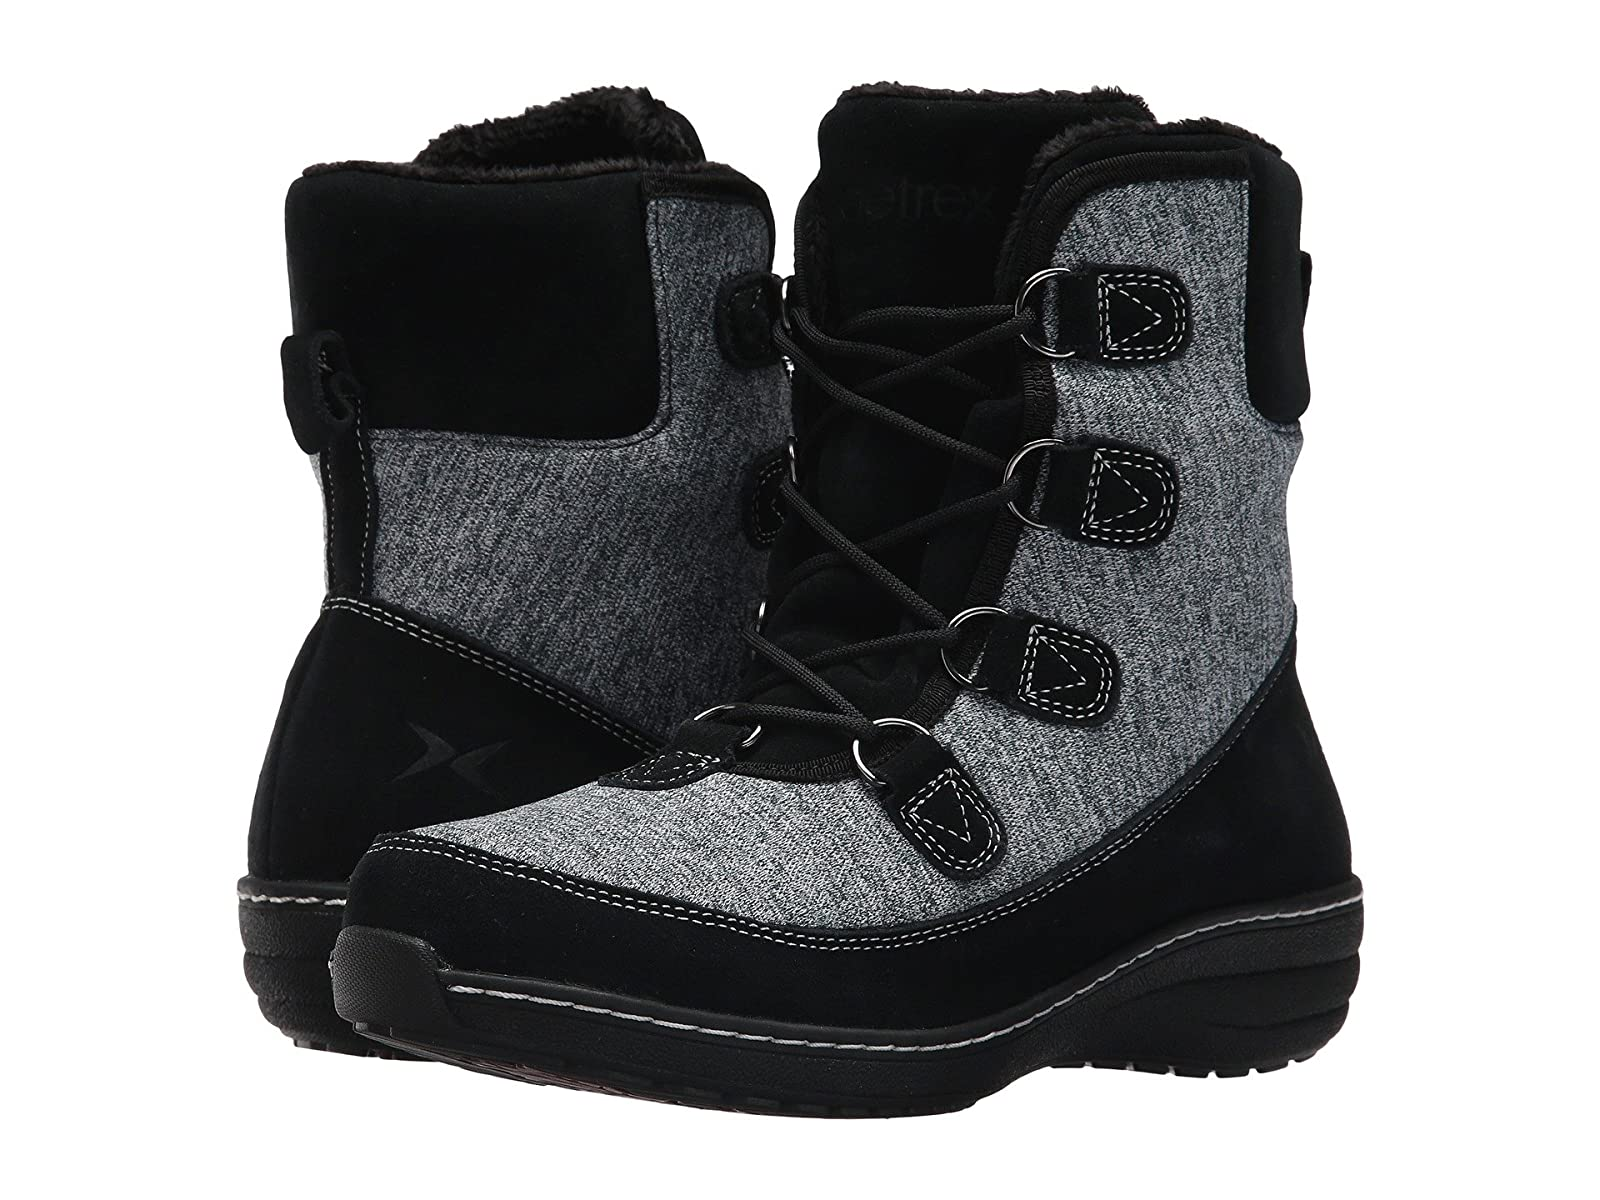 Aetrex Berries Padded BootCheap and distinctive eye-catching shoes